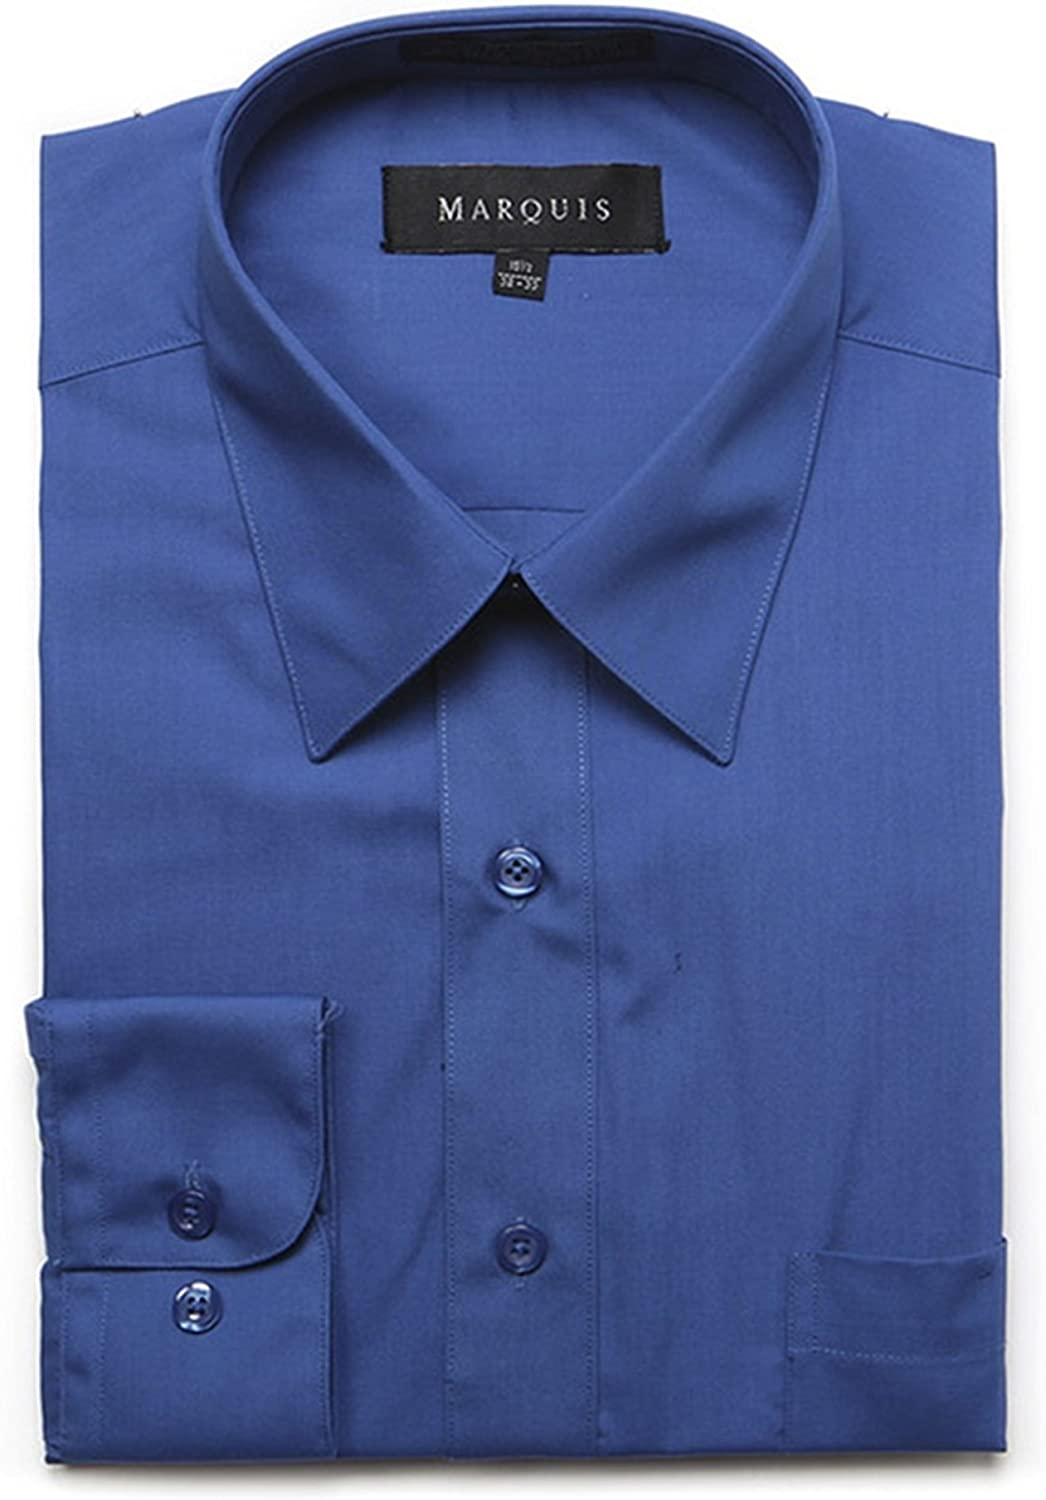 Marquis Men's Long 67% OFF of fixed price Sleeve Regular Fit Dress 70% OFF Outlet Big Shir Tall Size